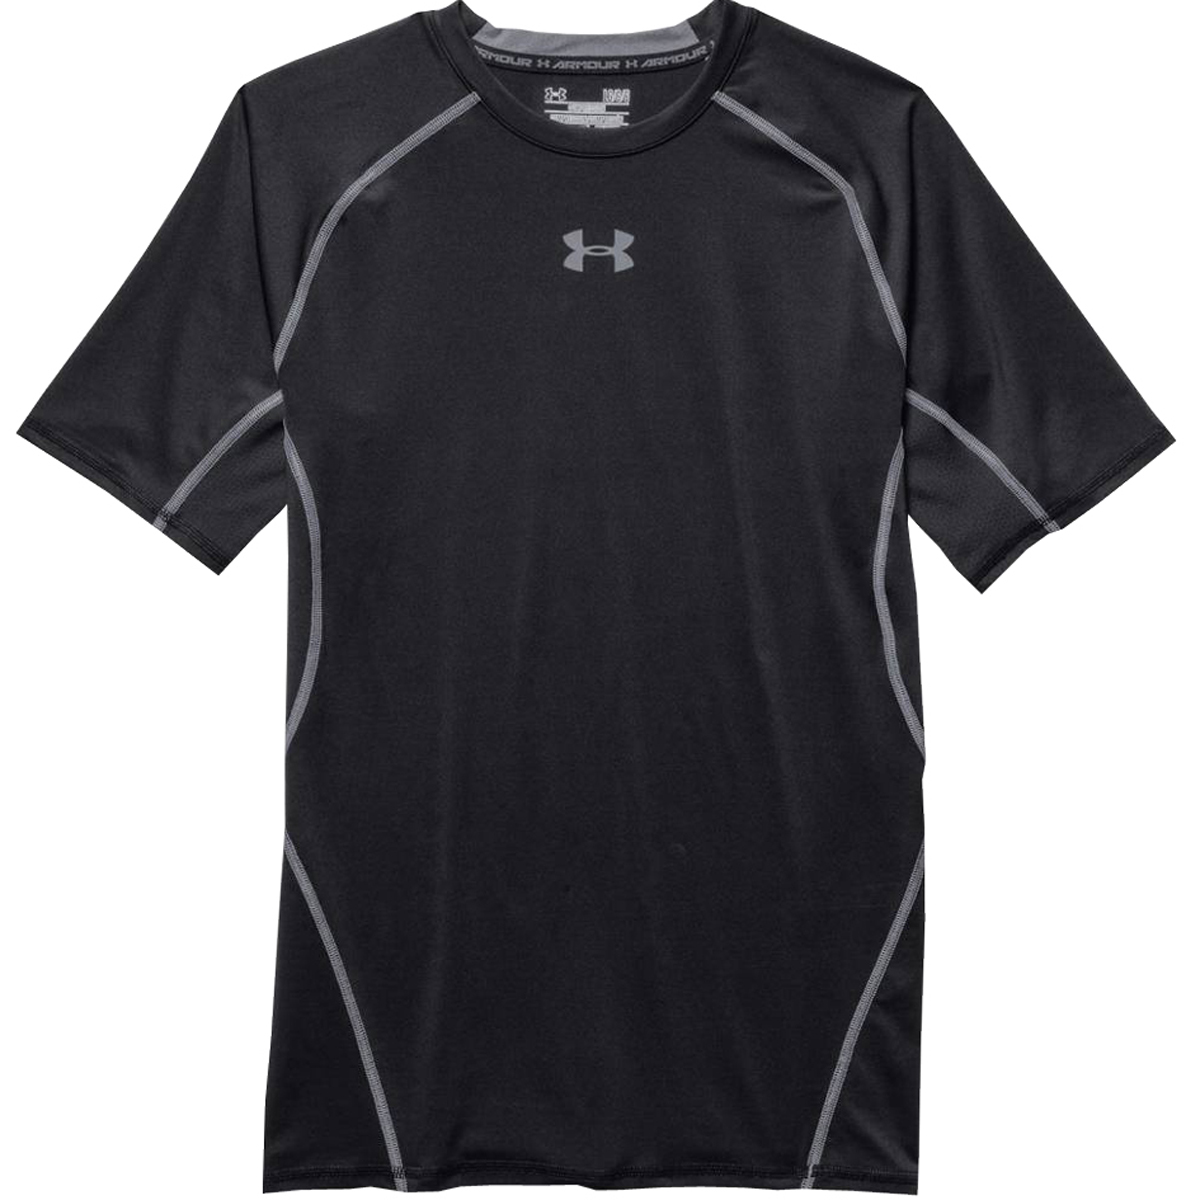 Under armour heatgear men 39 s short sleeve compression shirt for Under armour heatgear white shirt